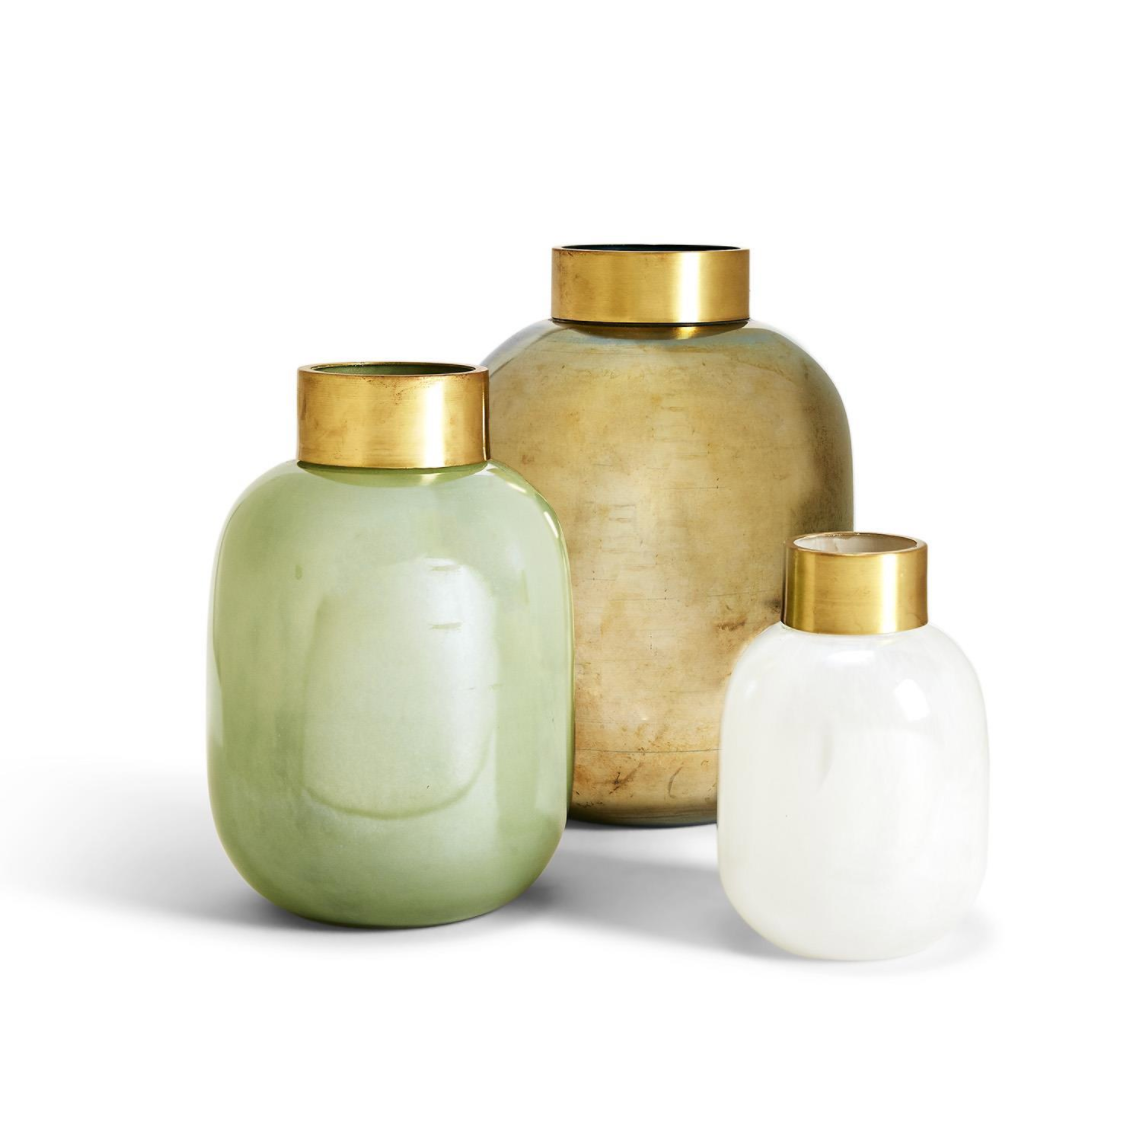 Lux Vases with Golden Collar